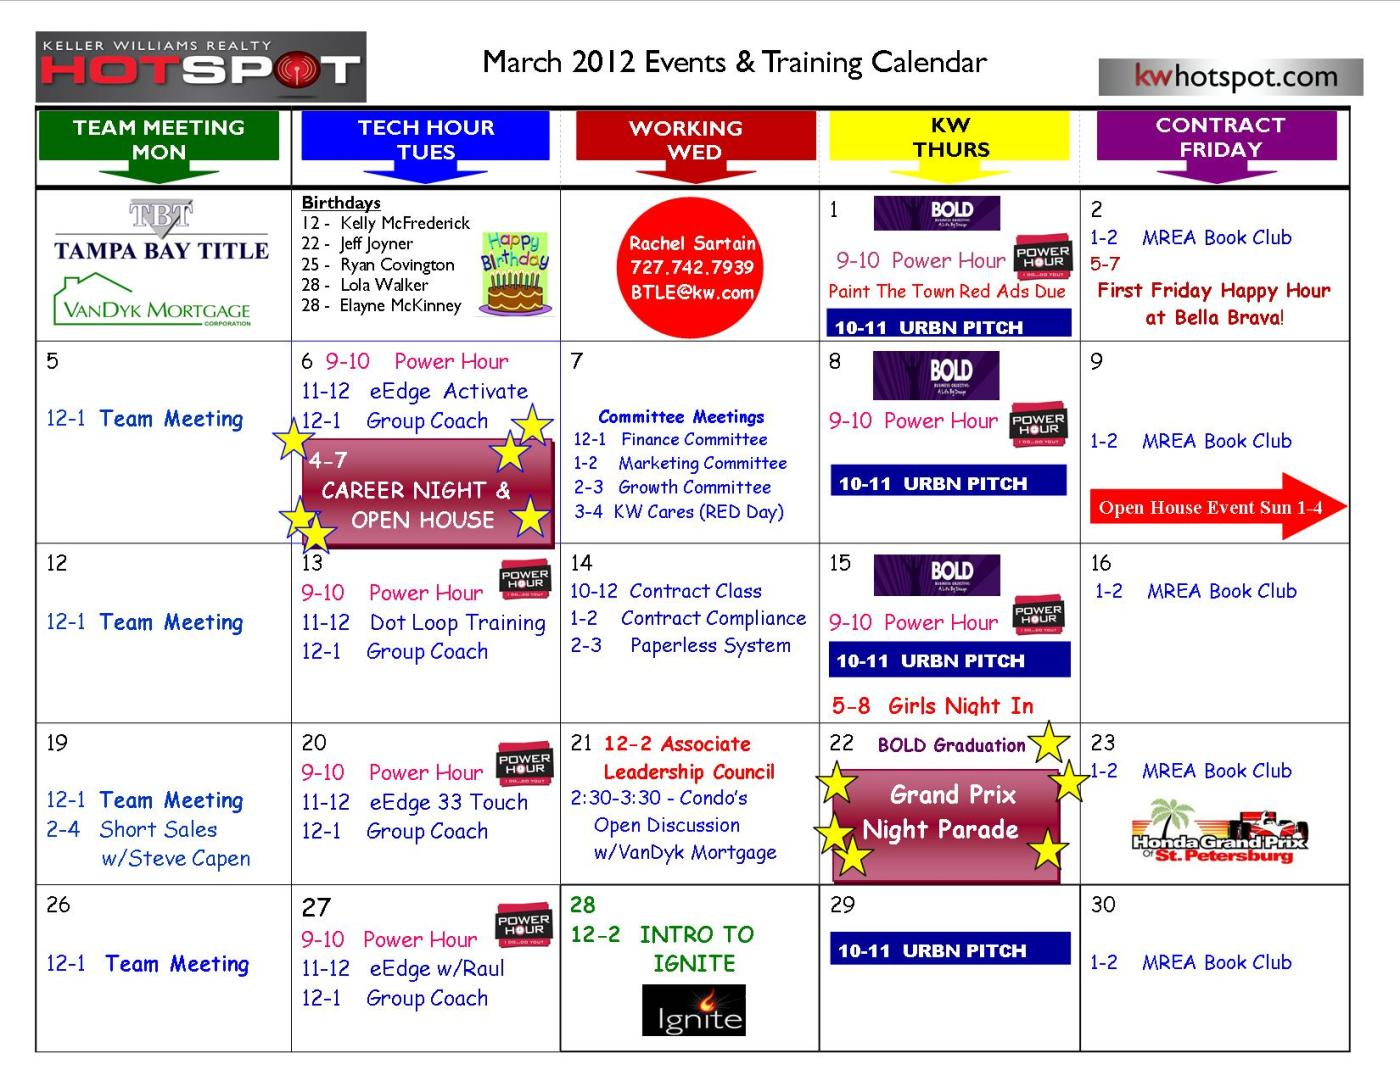 calendar of events template word - march events training calendar keller williams realty